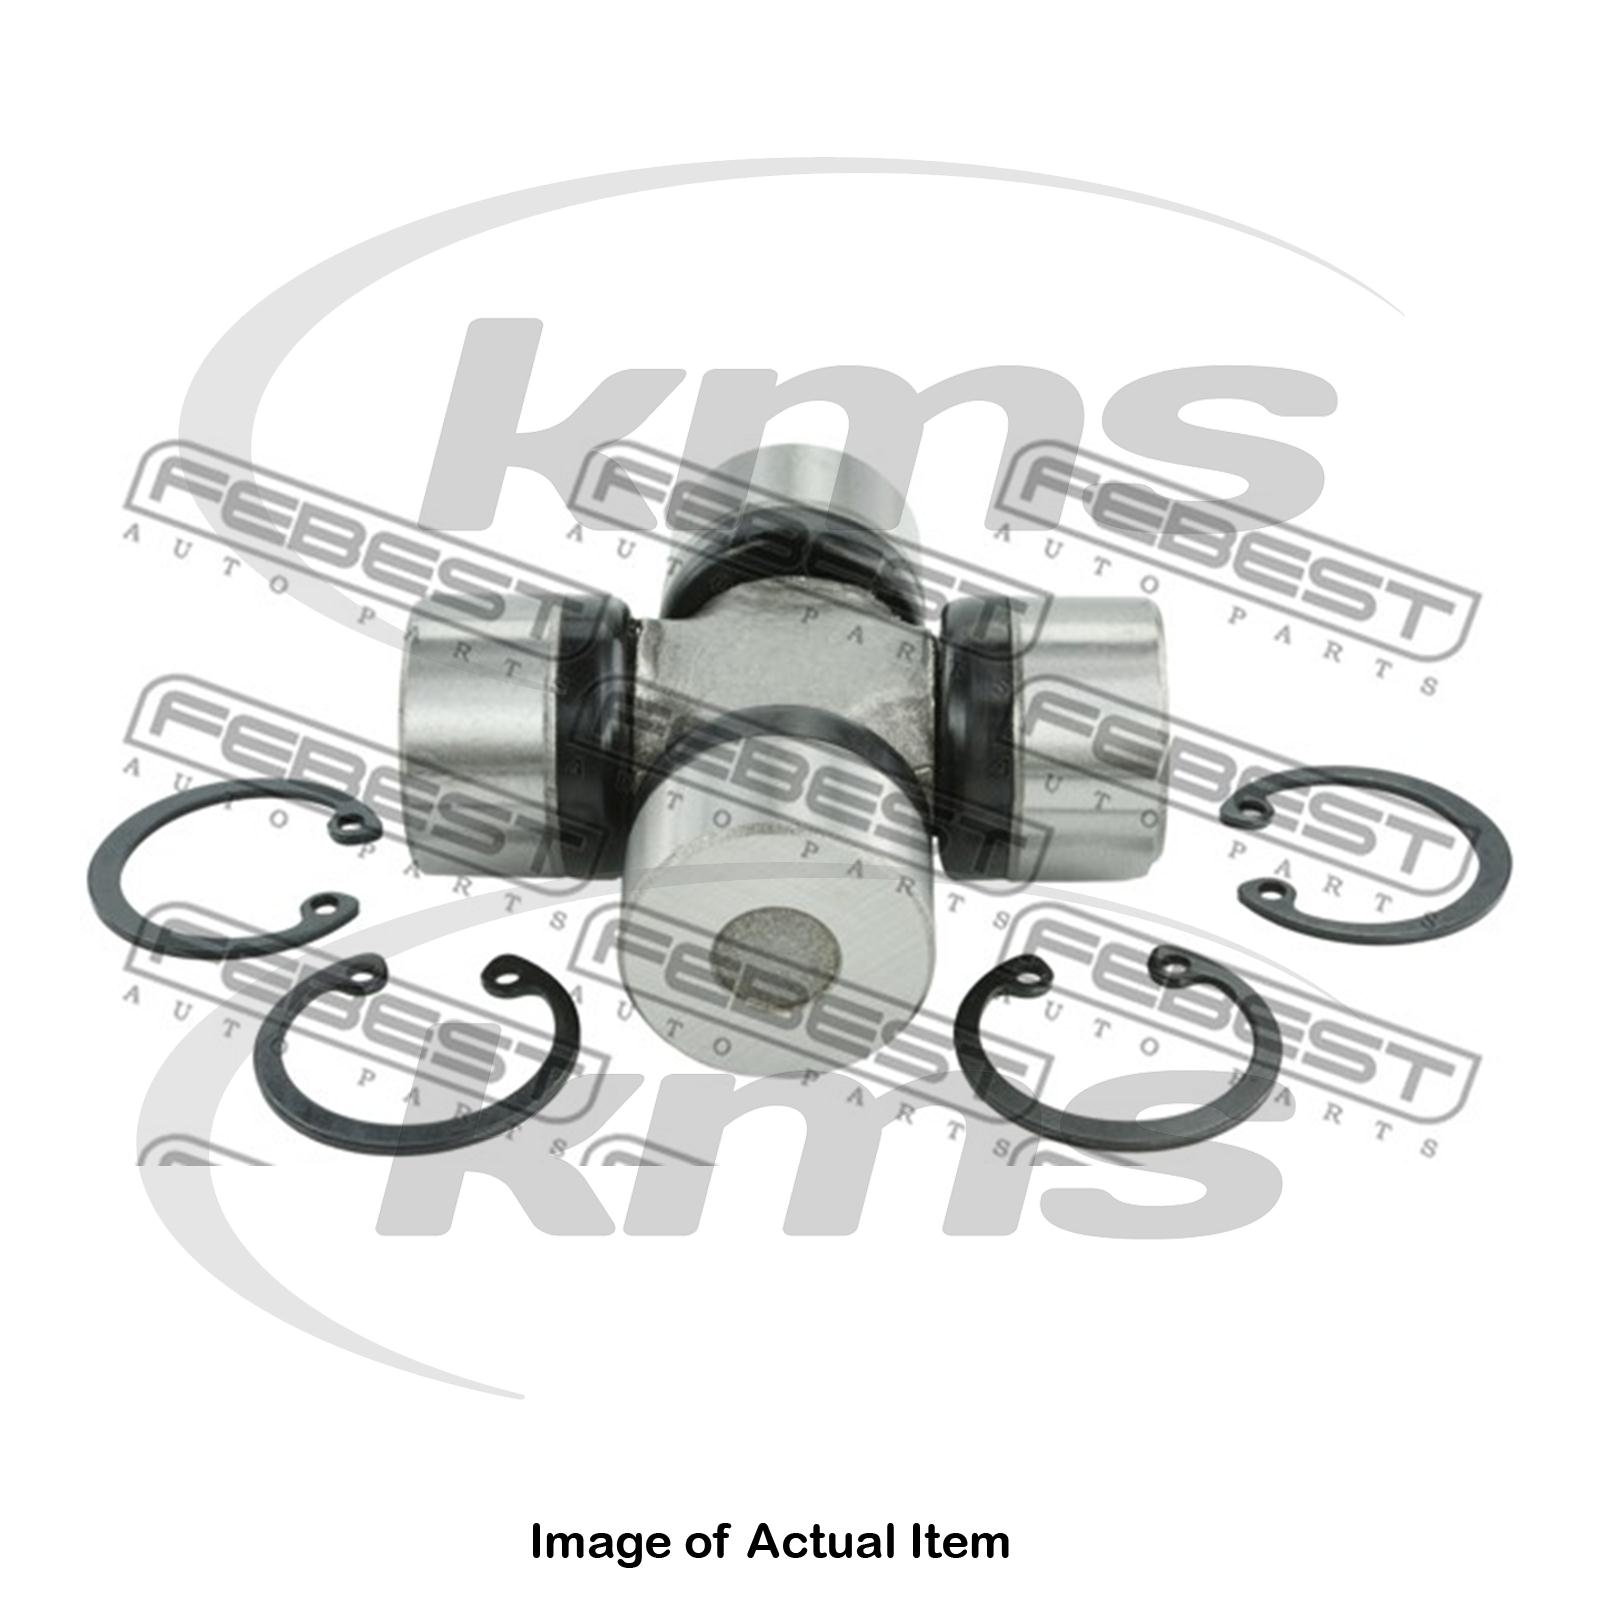 New Genuine FEBEST Propshaft Centre Bearing SZCB-WGR Top German Quality